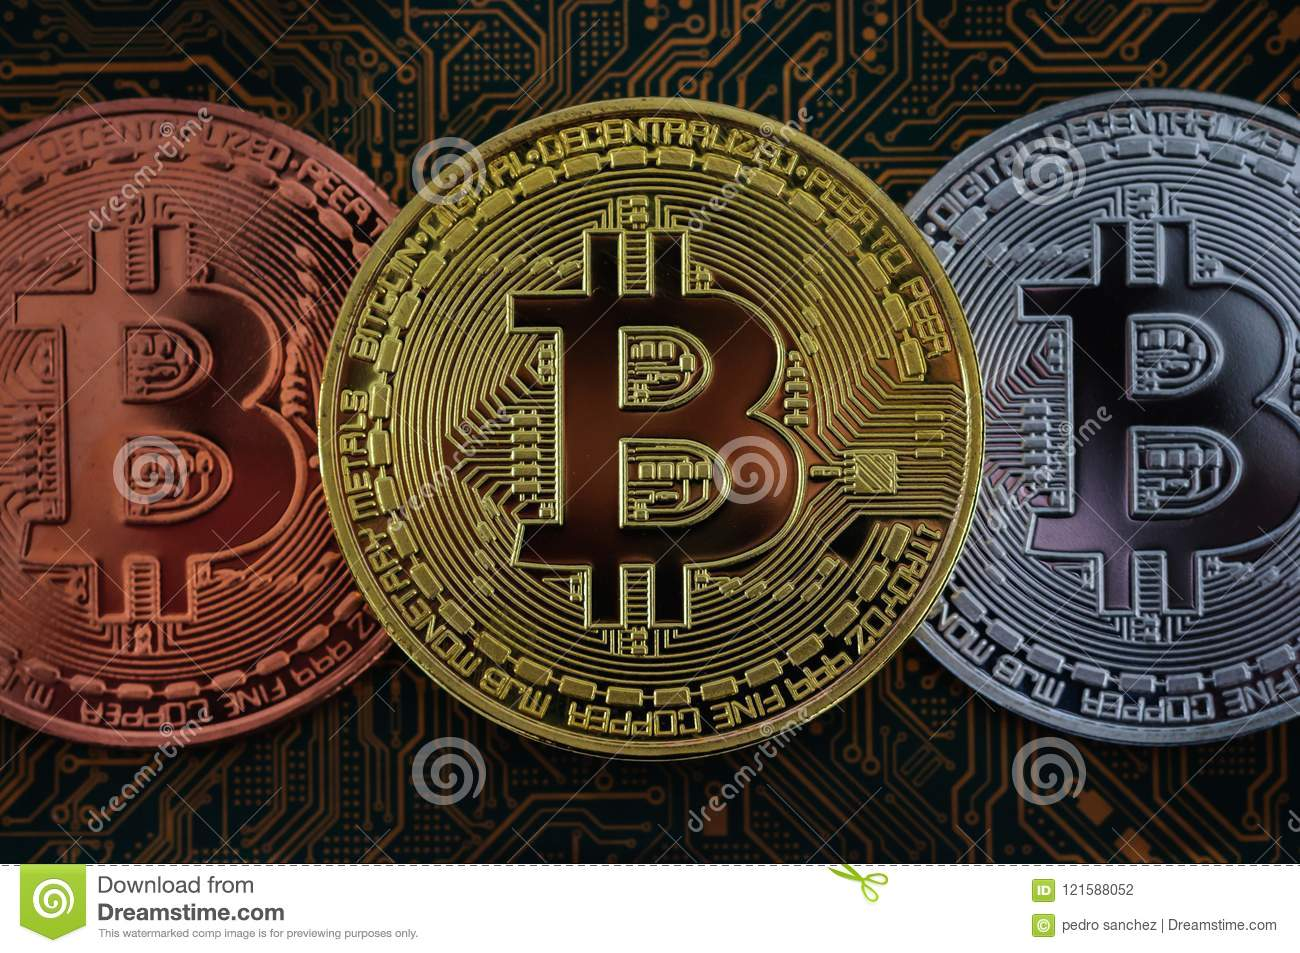 Bit coin concept. gold coin,computer circuit board with bit coin processor and microchips, electronic currency, e-commerce, intern